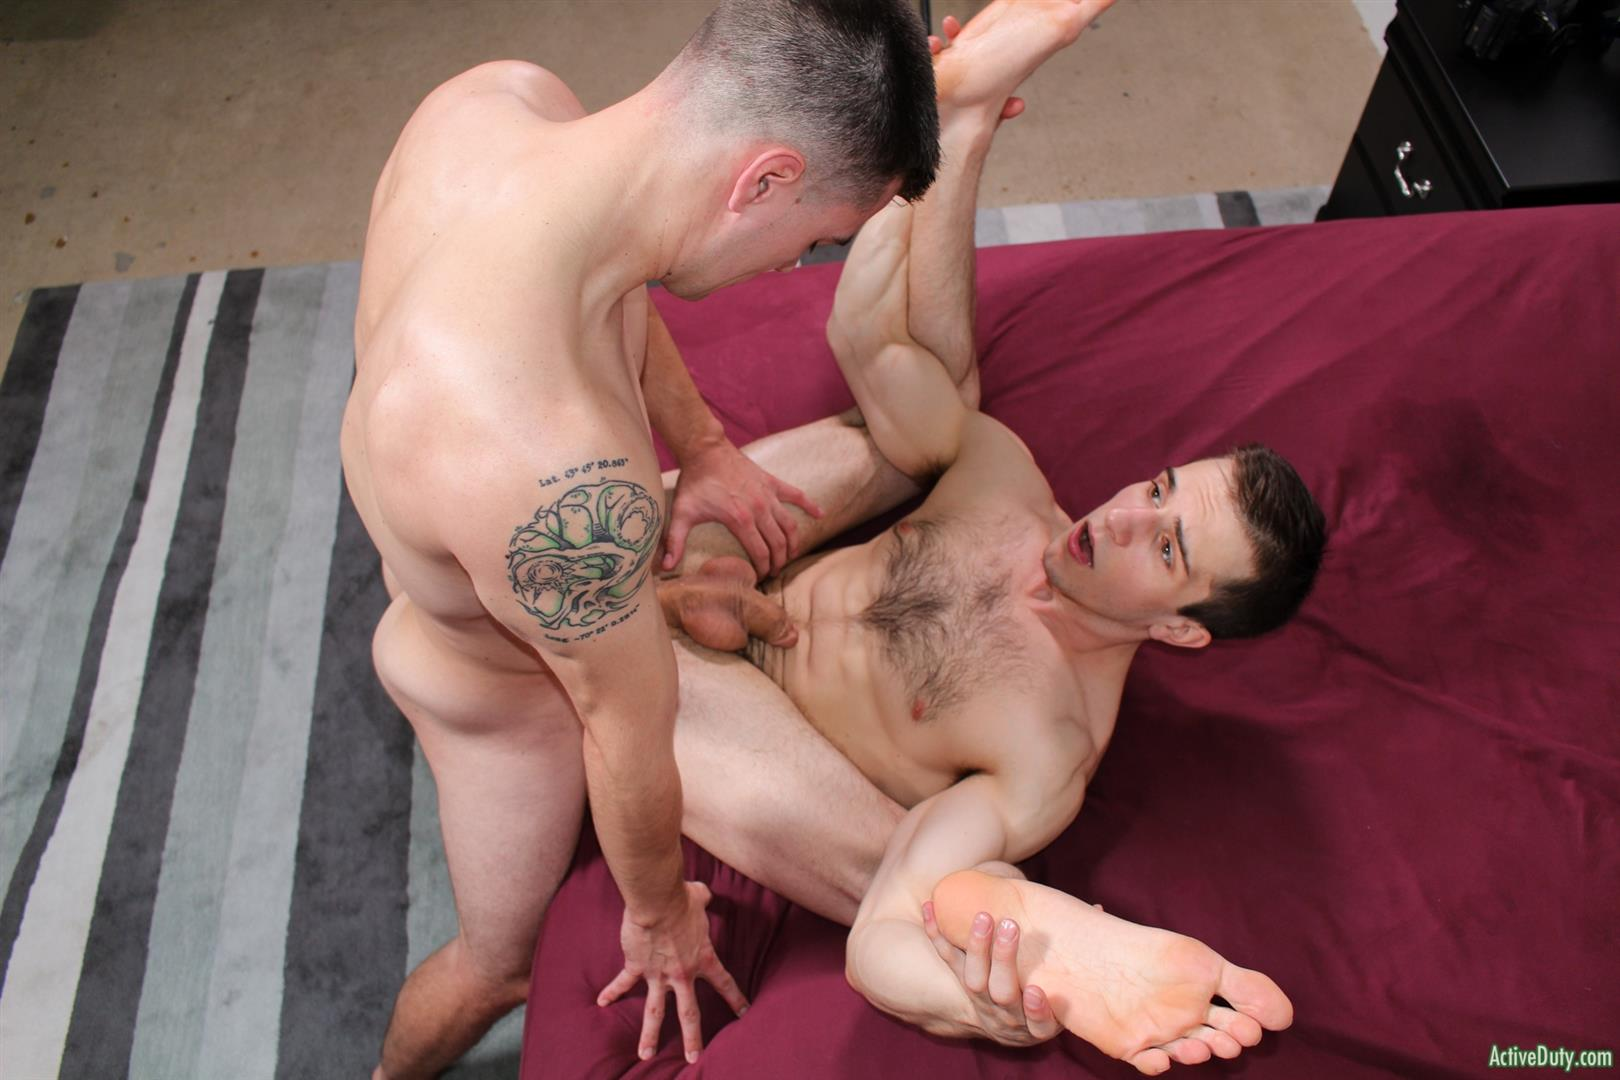 Active-Duty-Donte-Thick-and-Princeton-Price-Naked-Army-Guys-Fucking-Bareback-13 Getting Bareback Fucked In The Ass By A Thick Army Dick